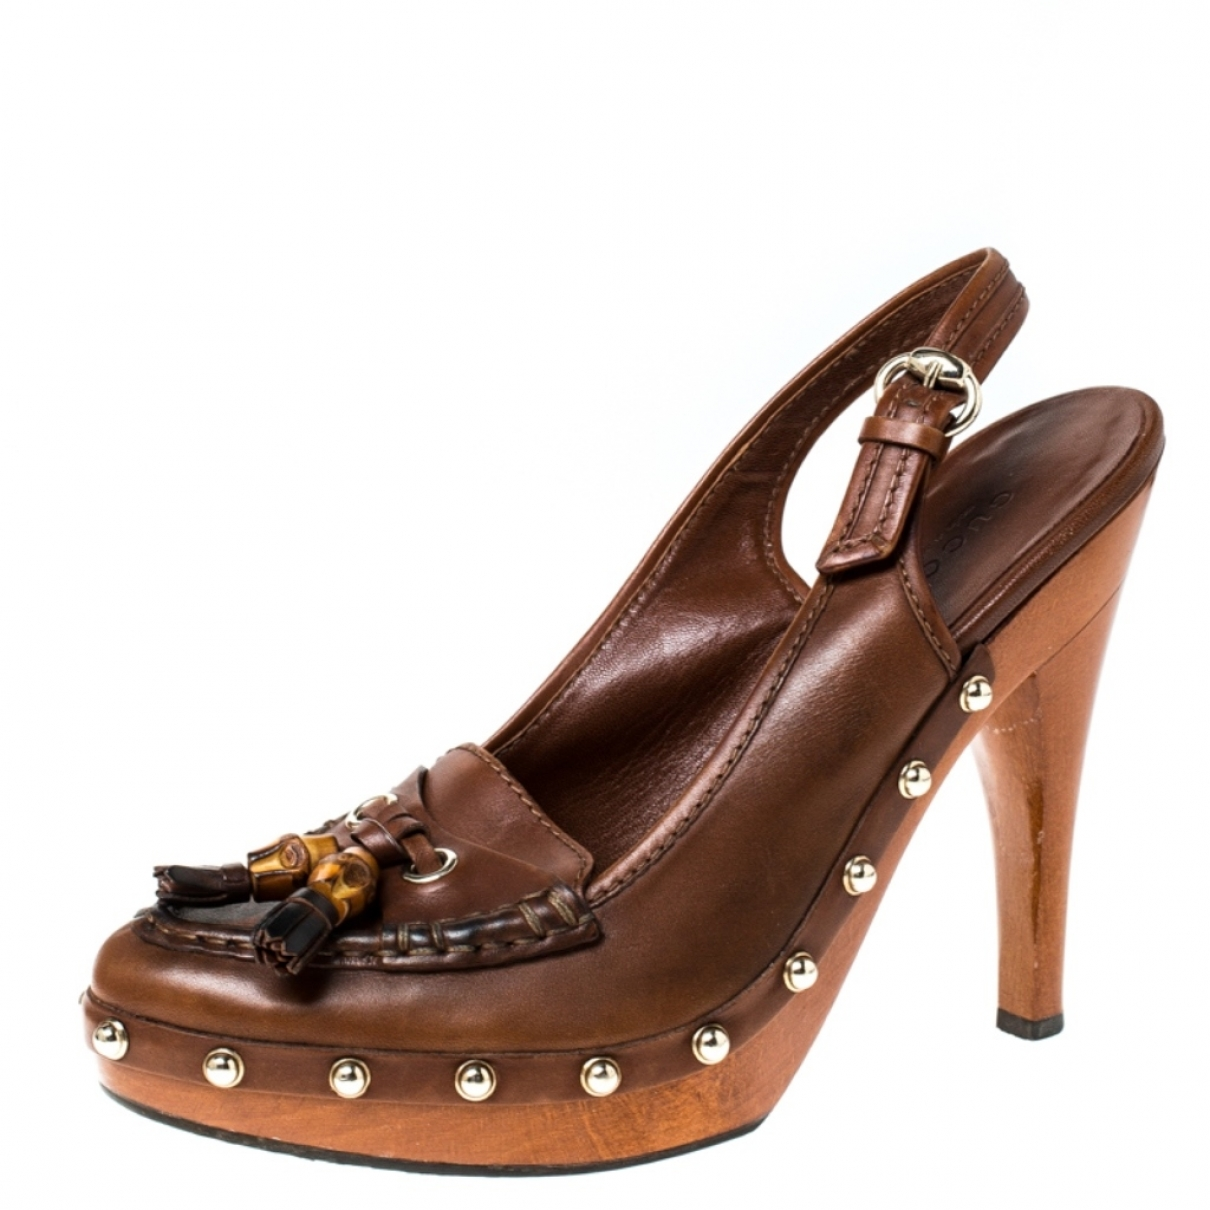 Gucci \N Brown Leather Sandals for Women 38.5 EU